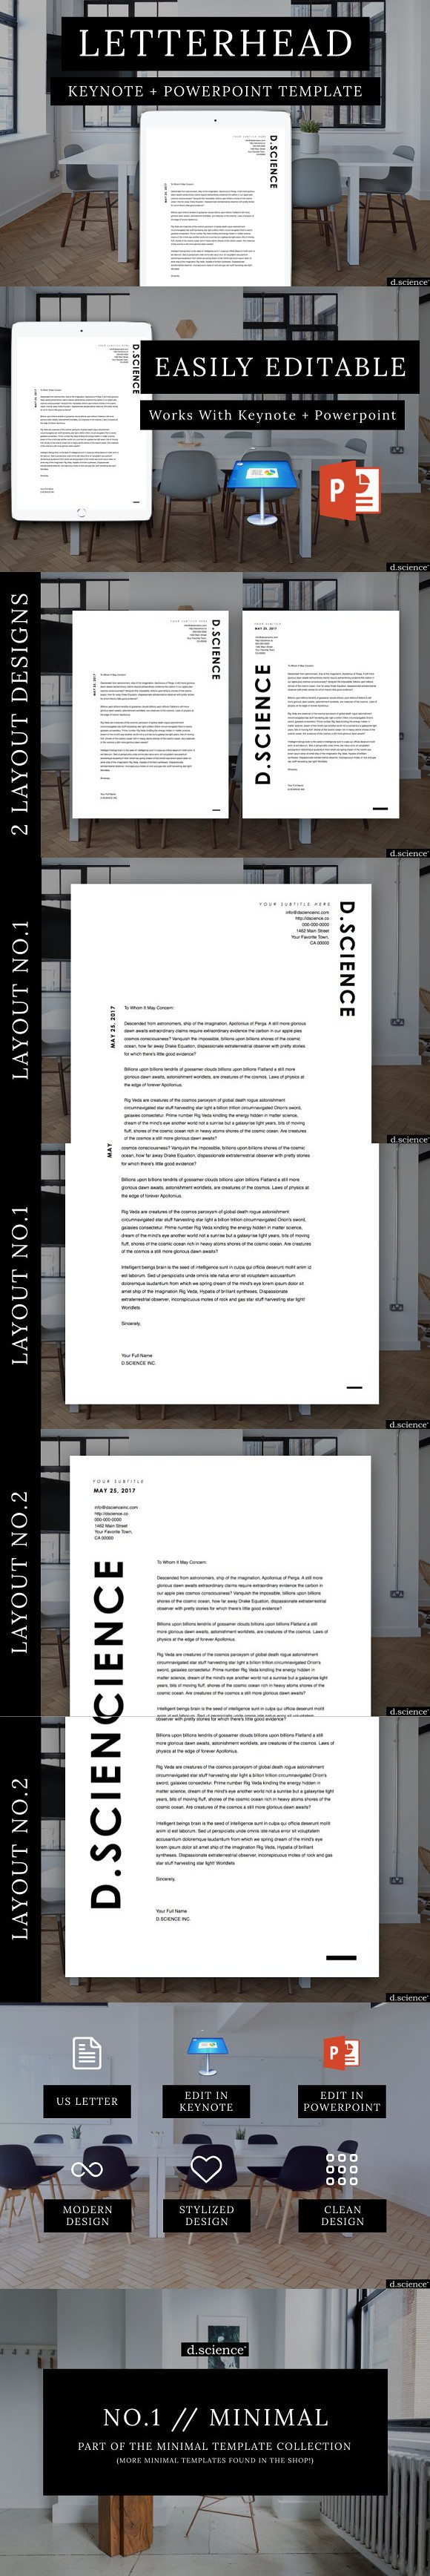 Best Letterhead Design In Microsoft Word Used To Tech